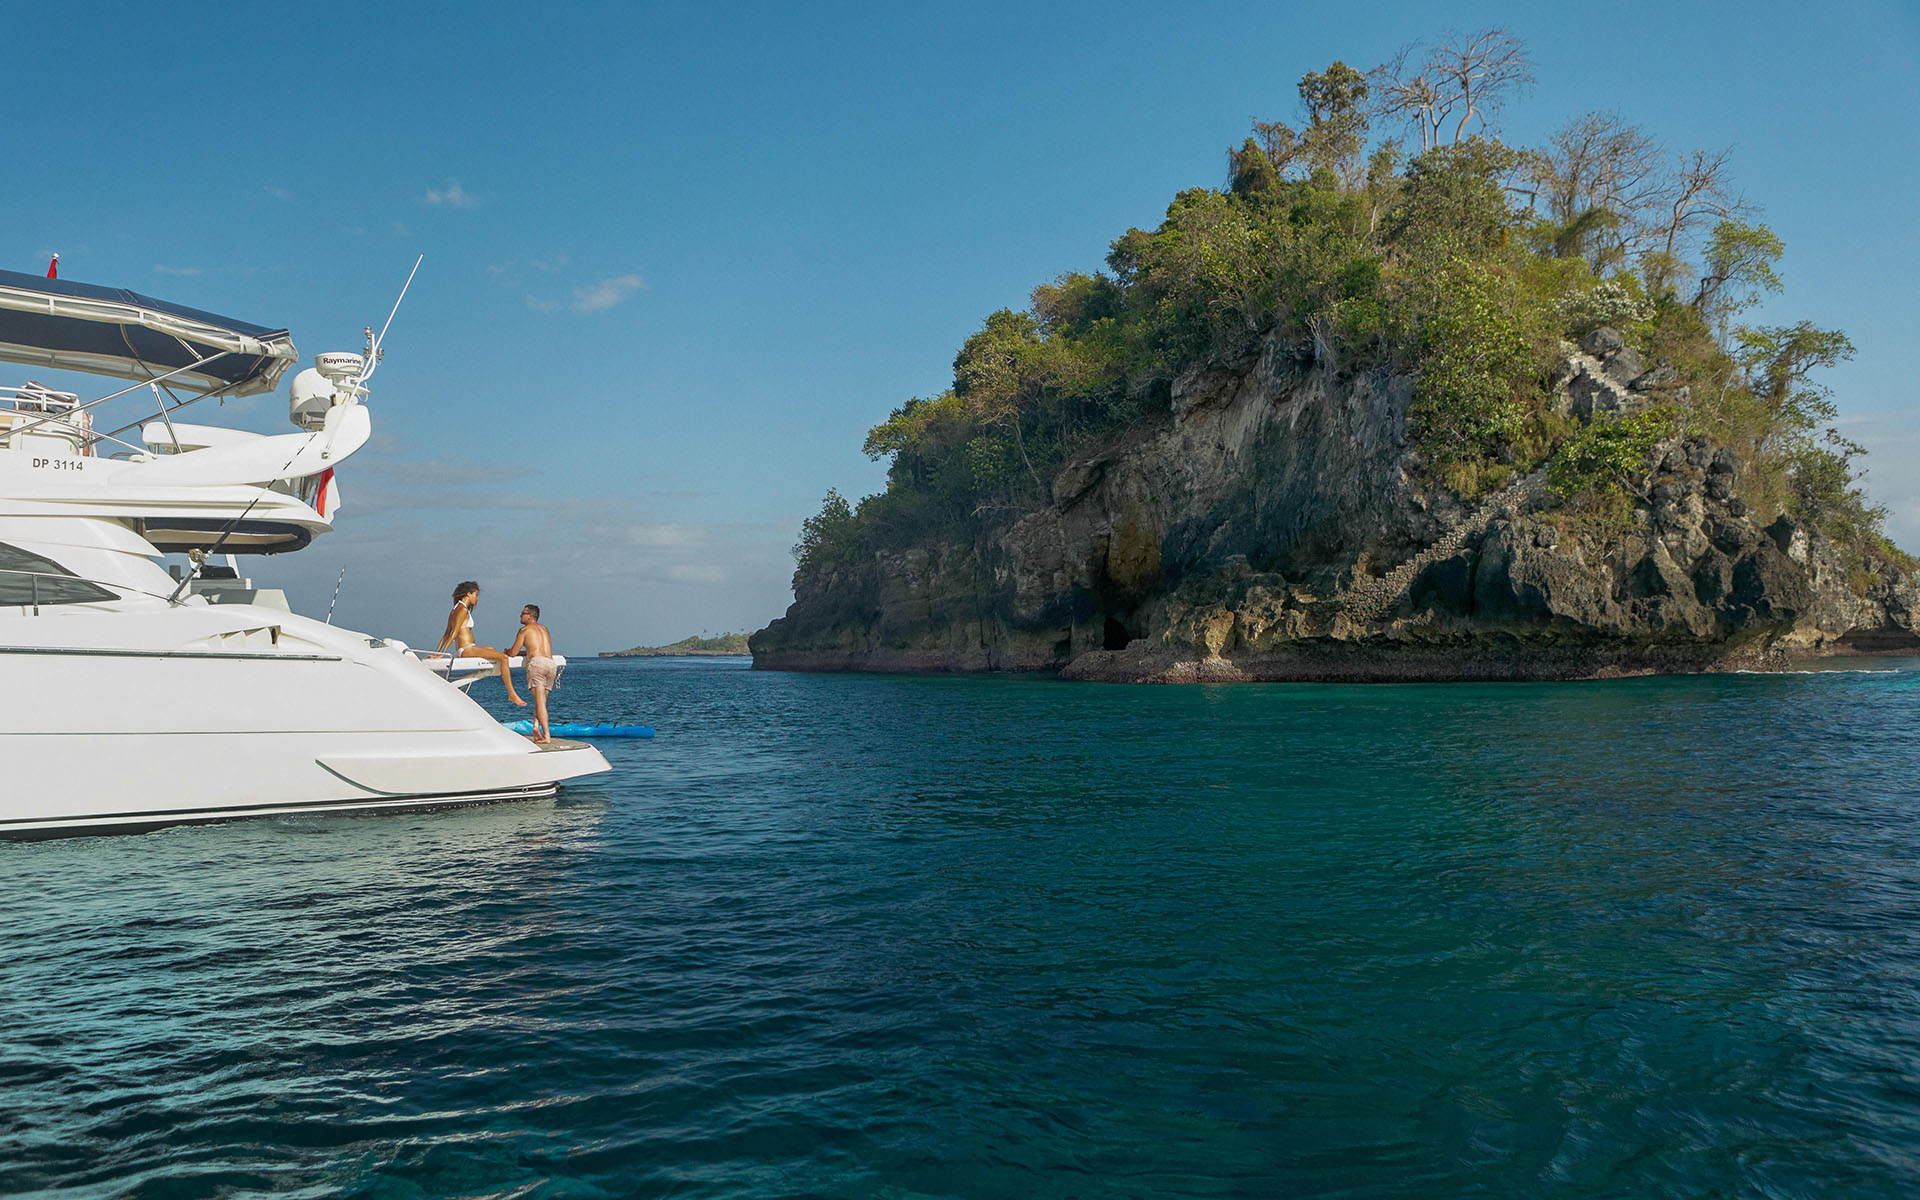 Bali's Most Luxurious Yachts and Day Charters